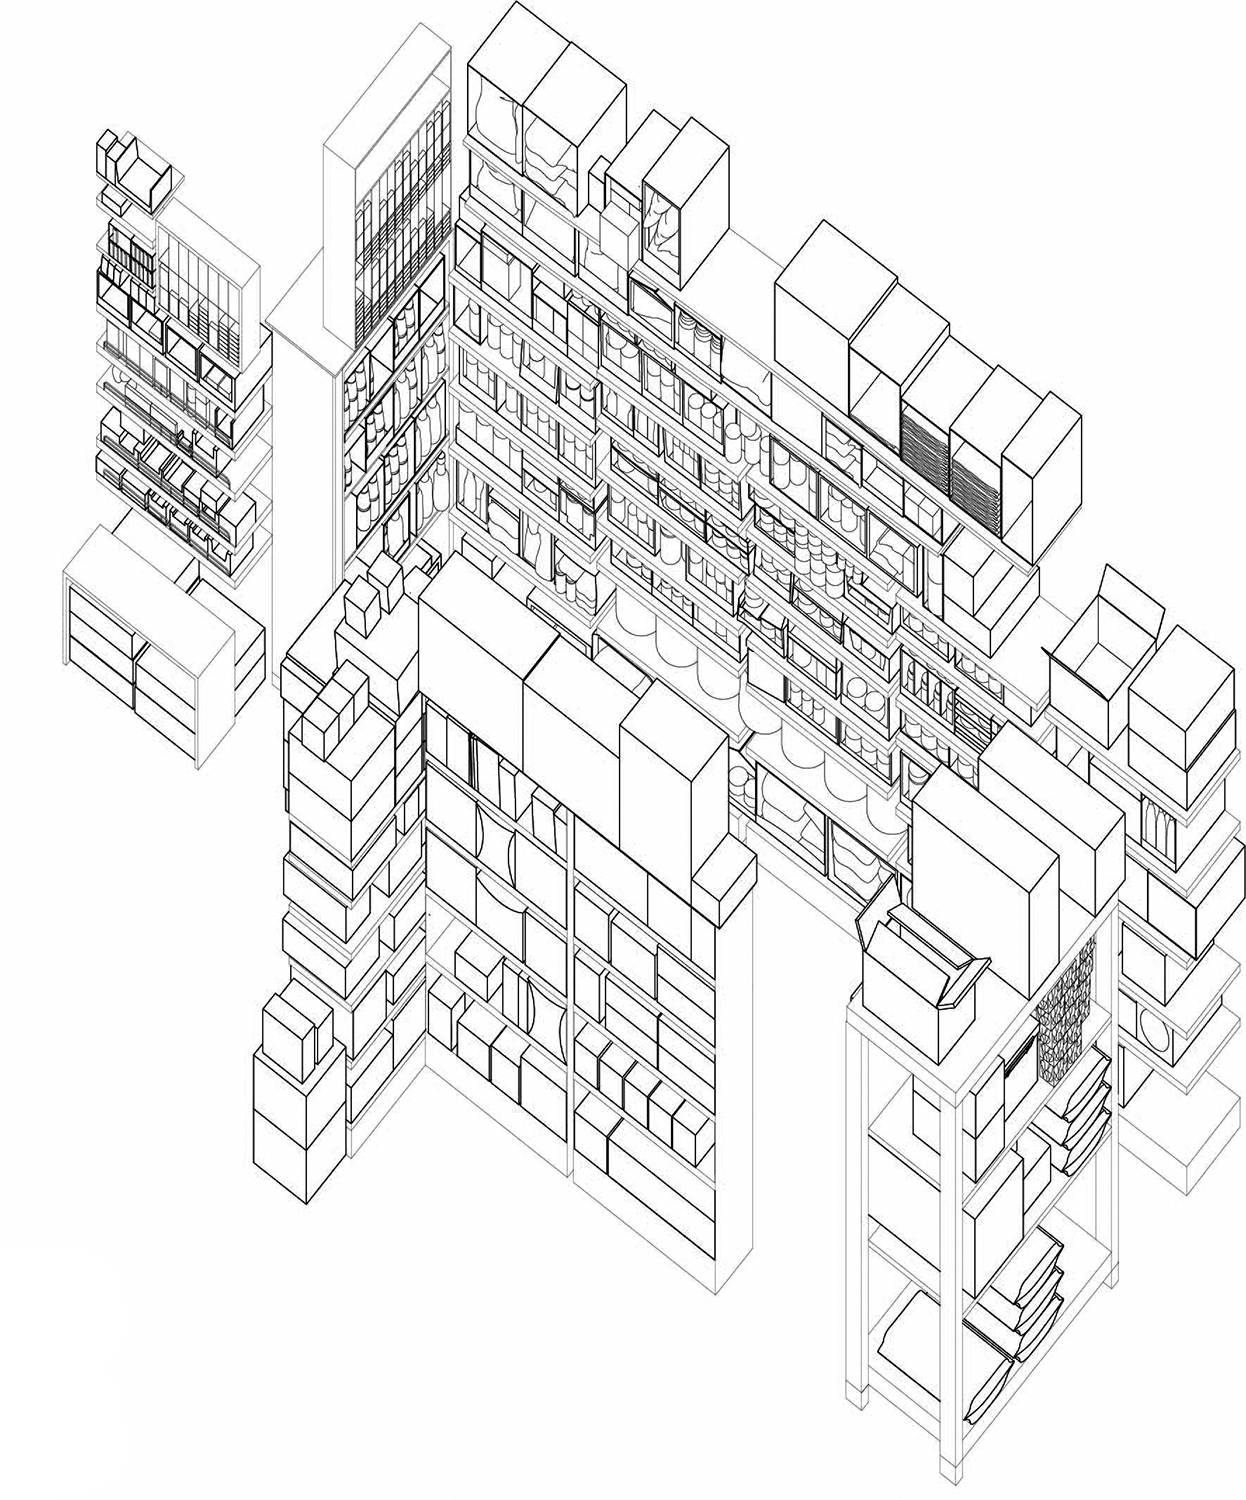 mm_gp1_axonometric